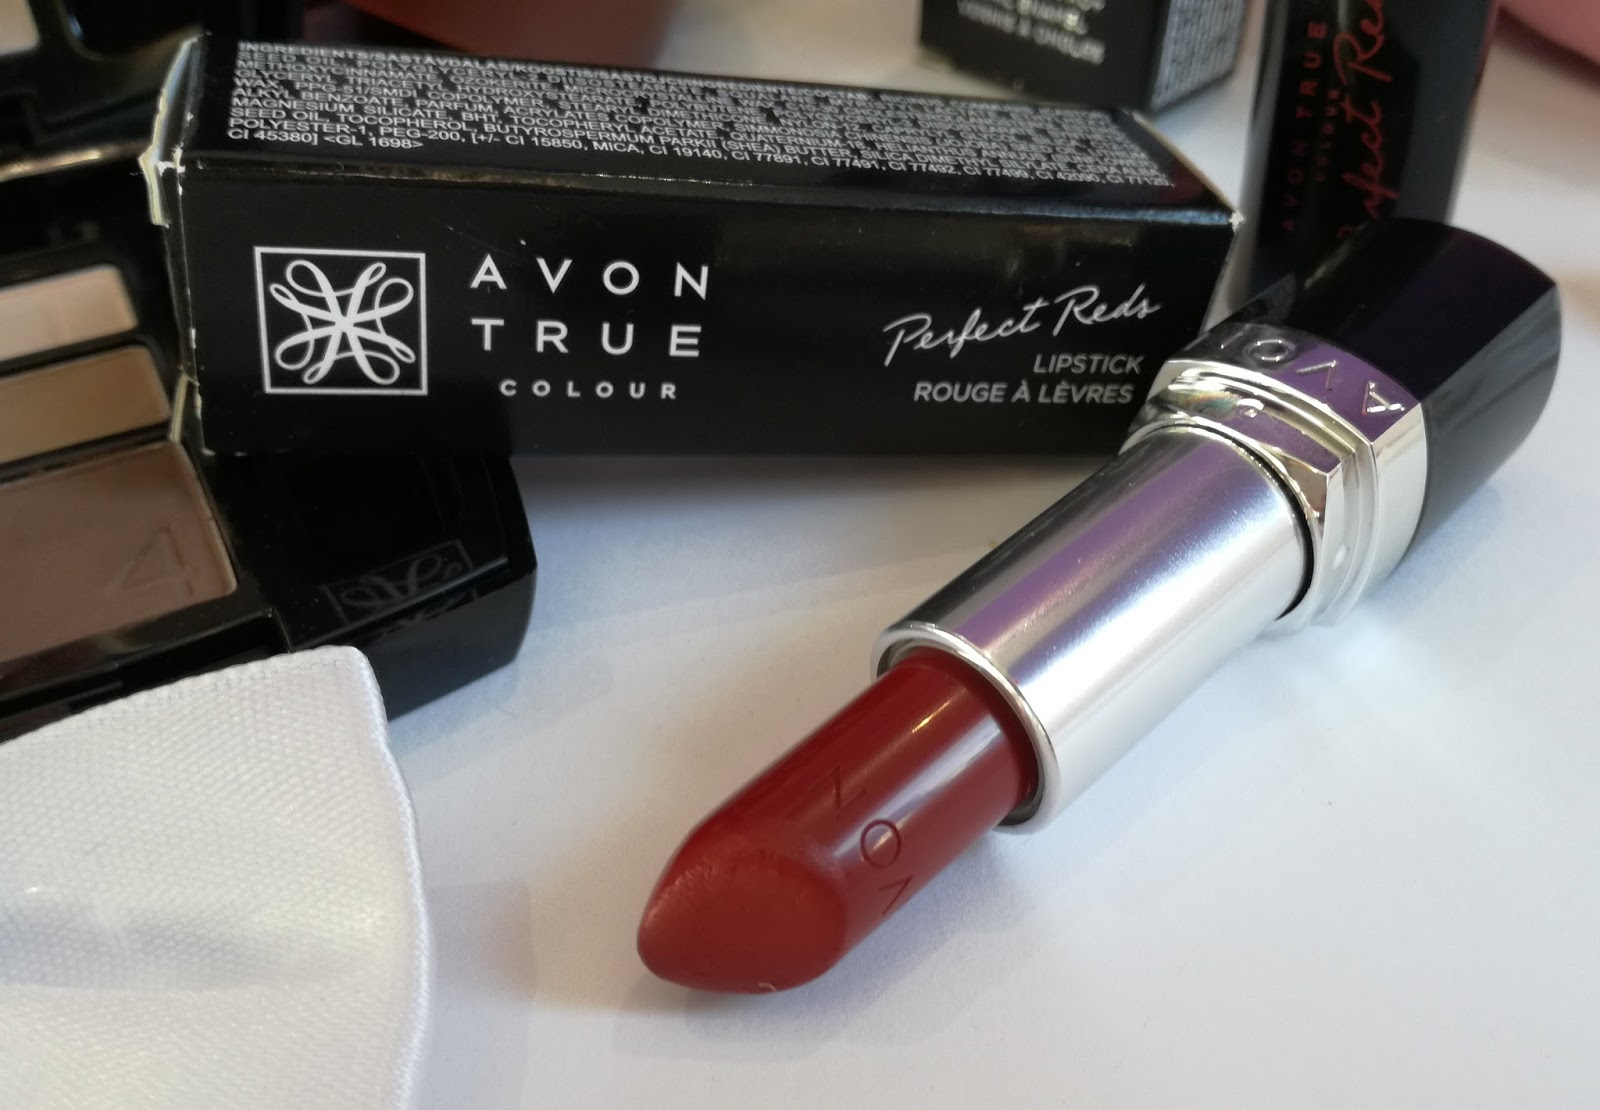 Avon-True-Colour-Perfect-Reds-Lipstick-Scarlet-Siren